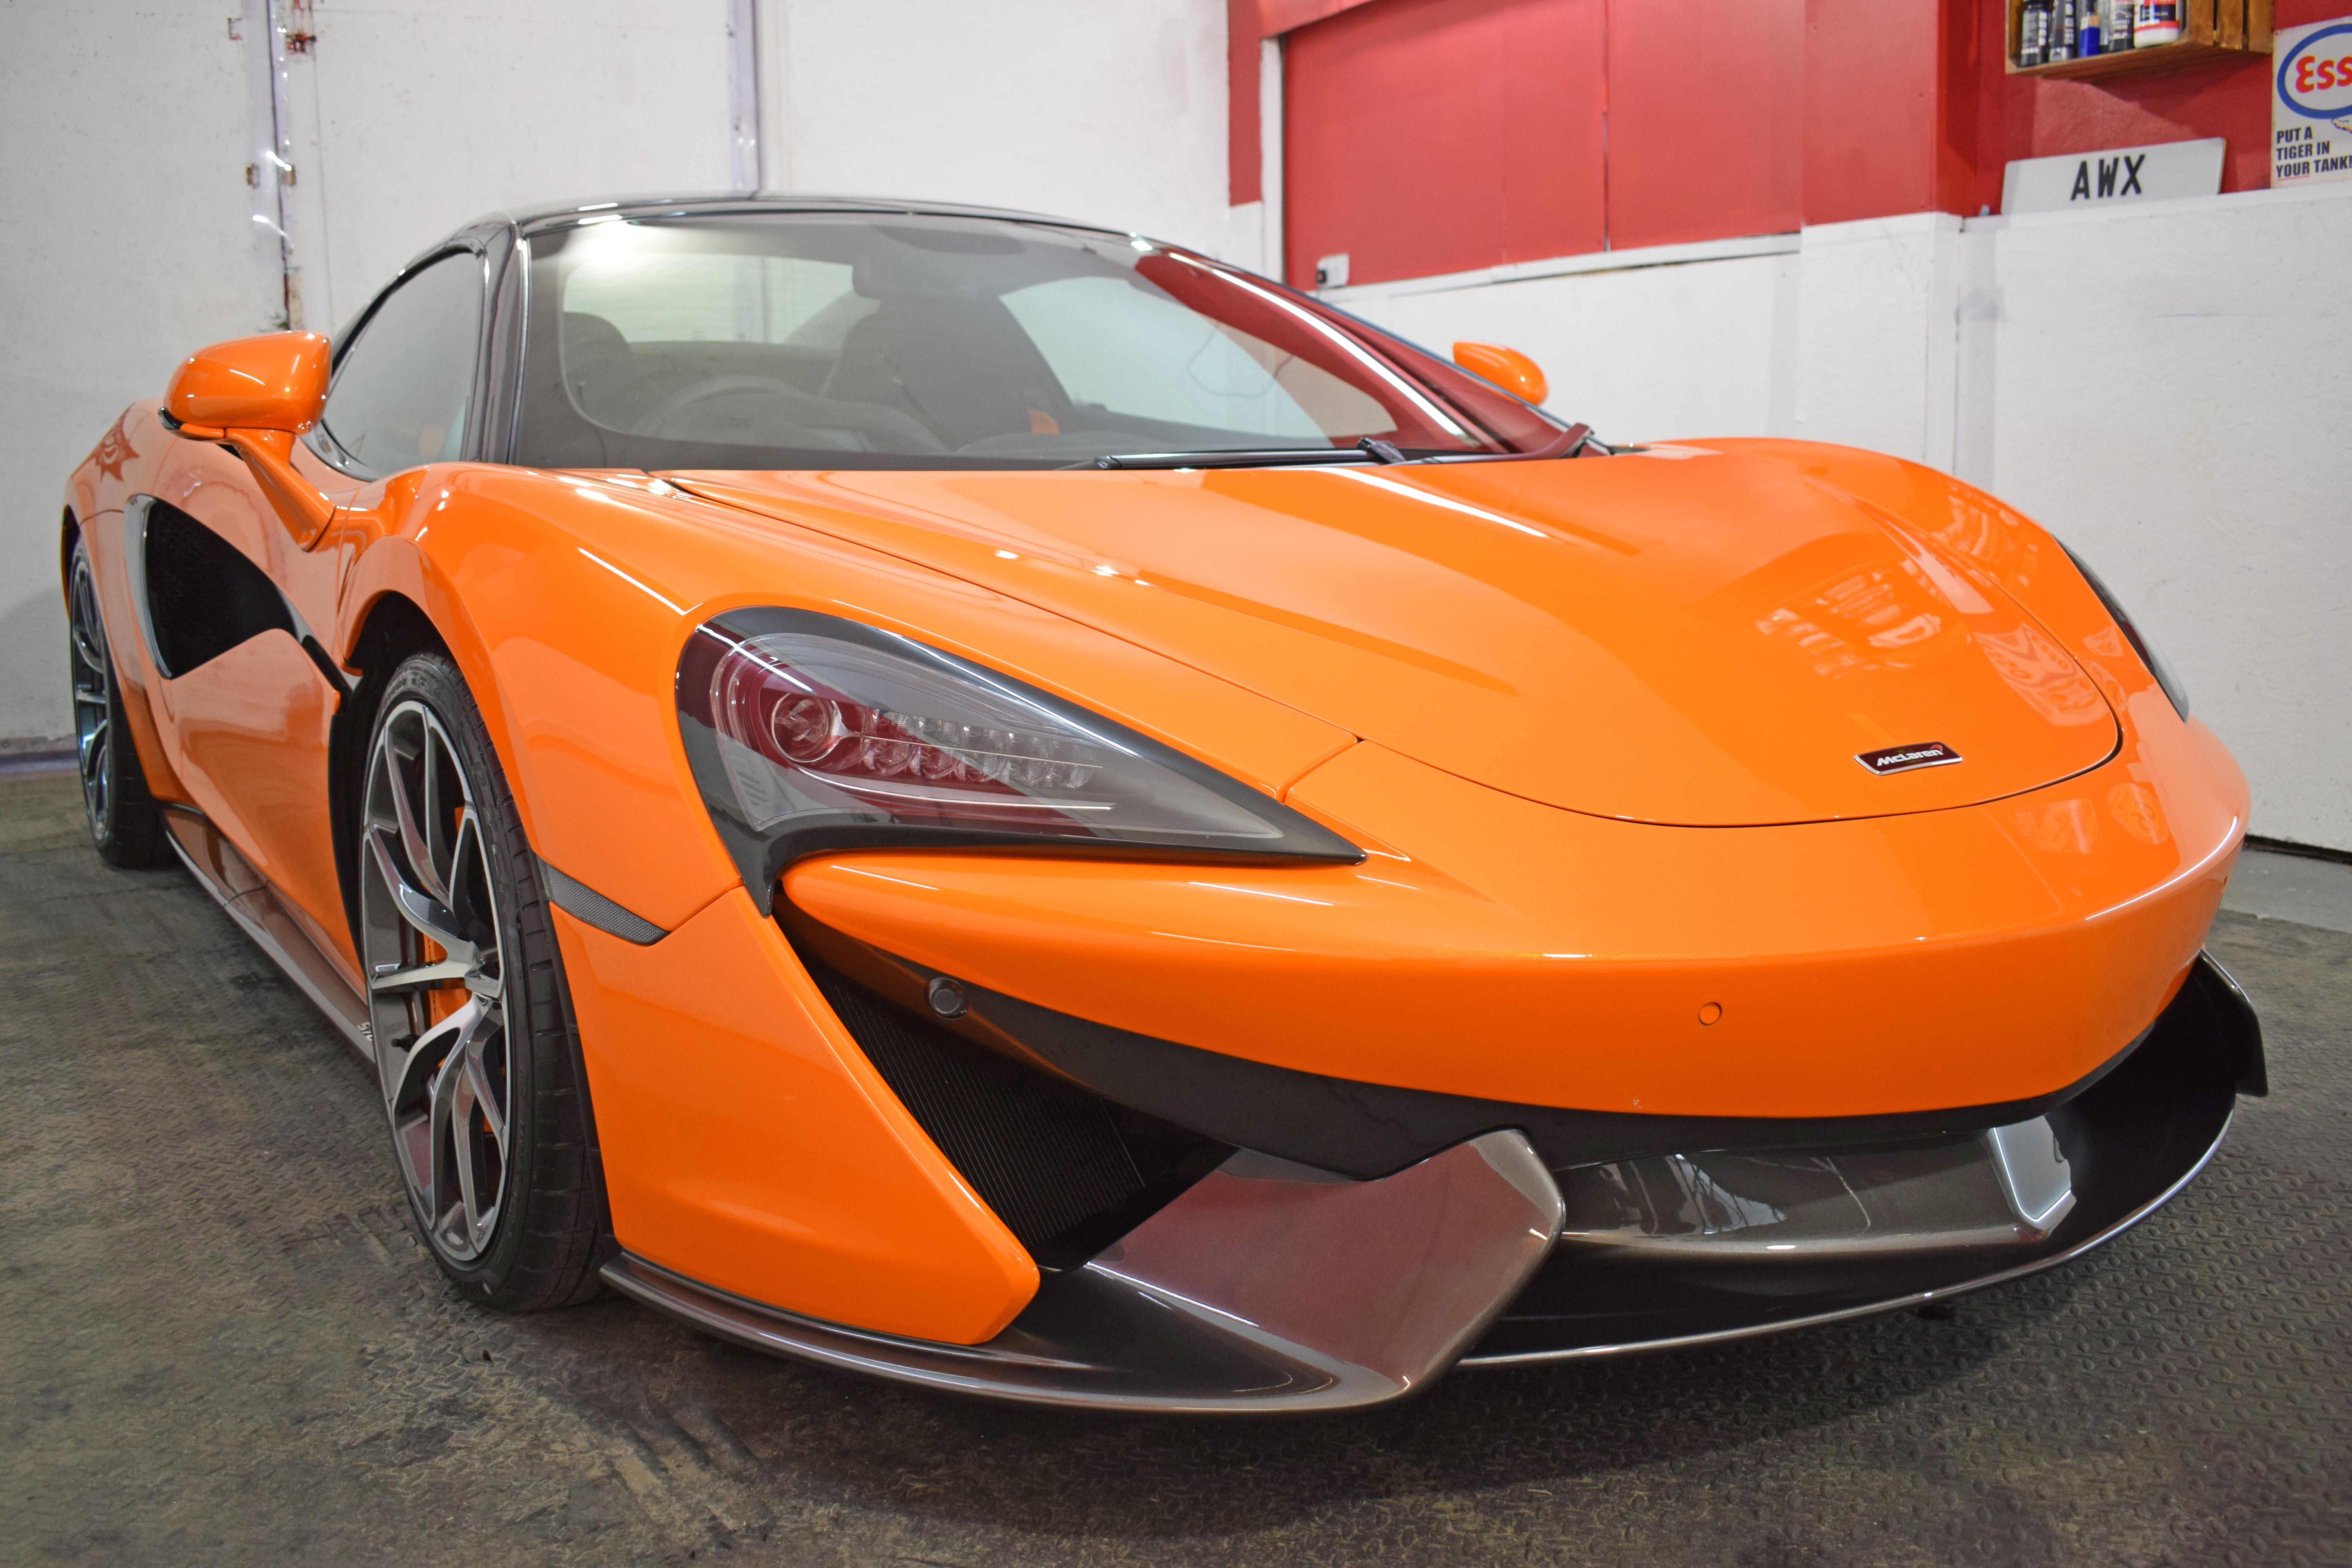 McLaren Paint Protection Film